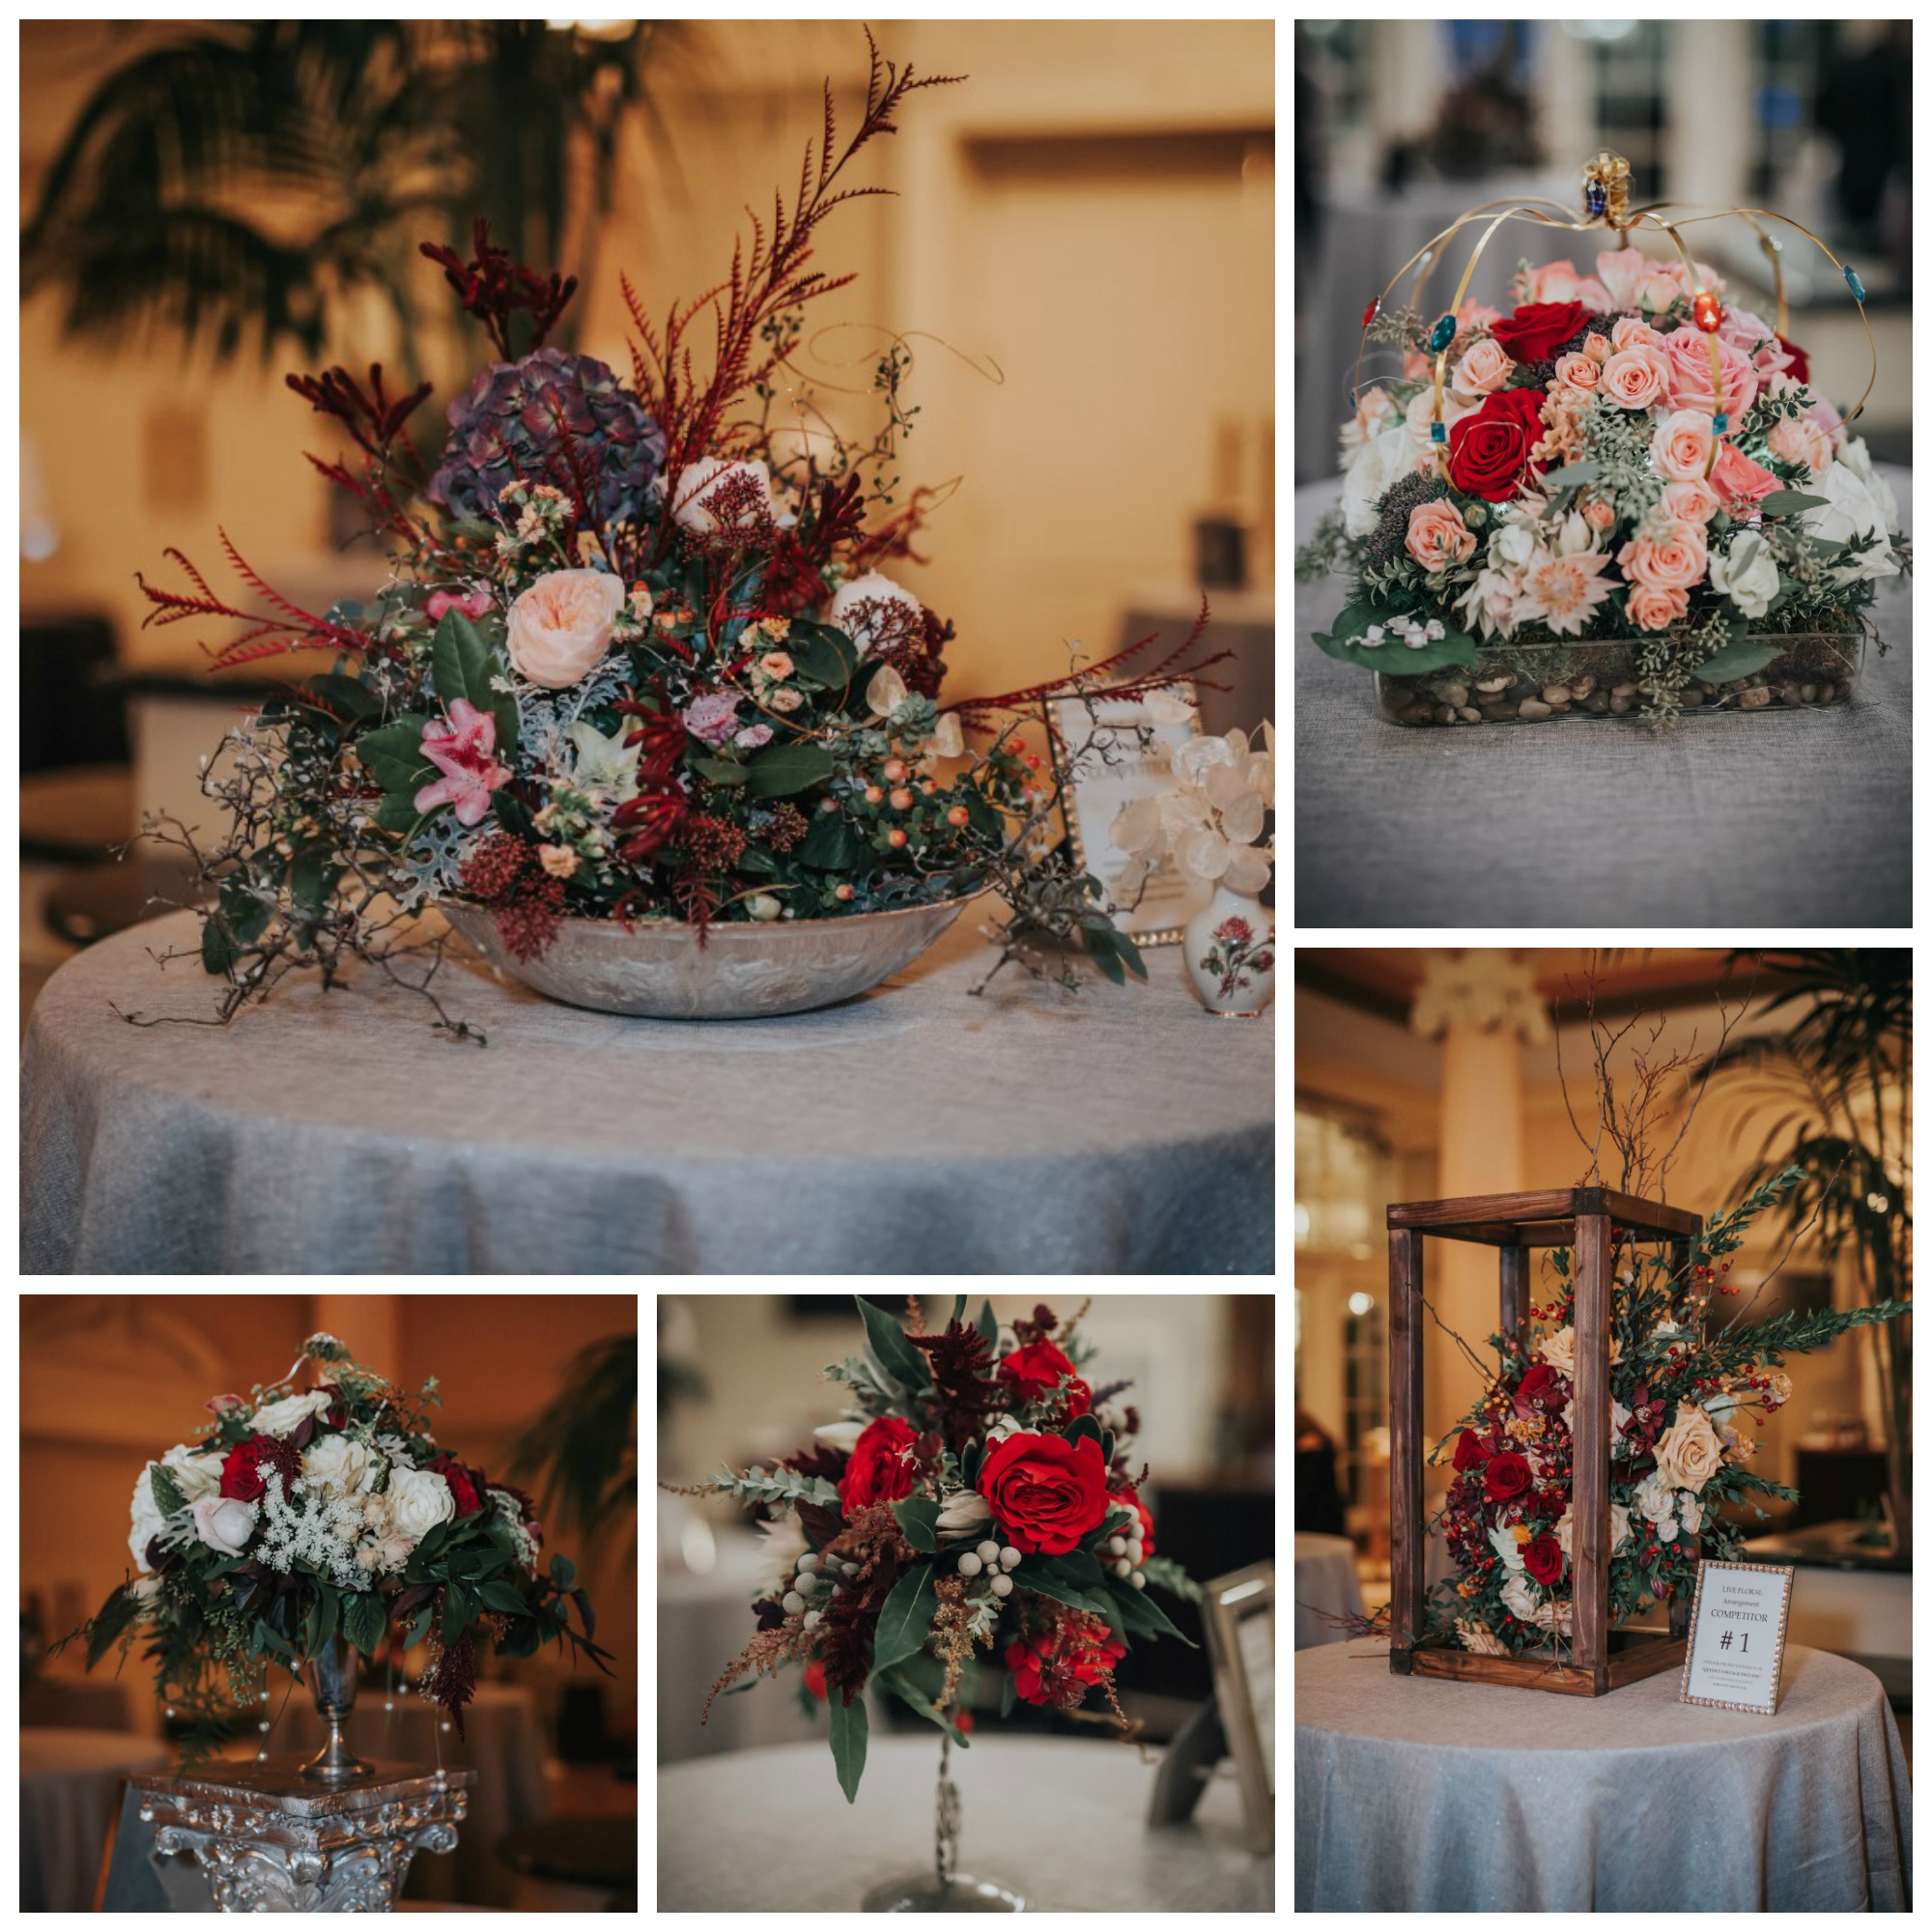 Floral at the Wedding Awards on Vancouver Island 2016